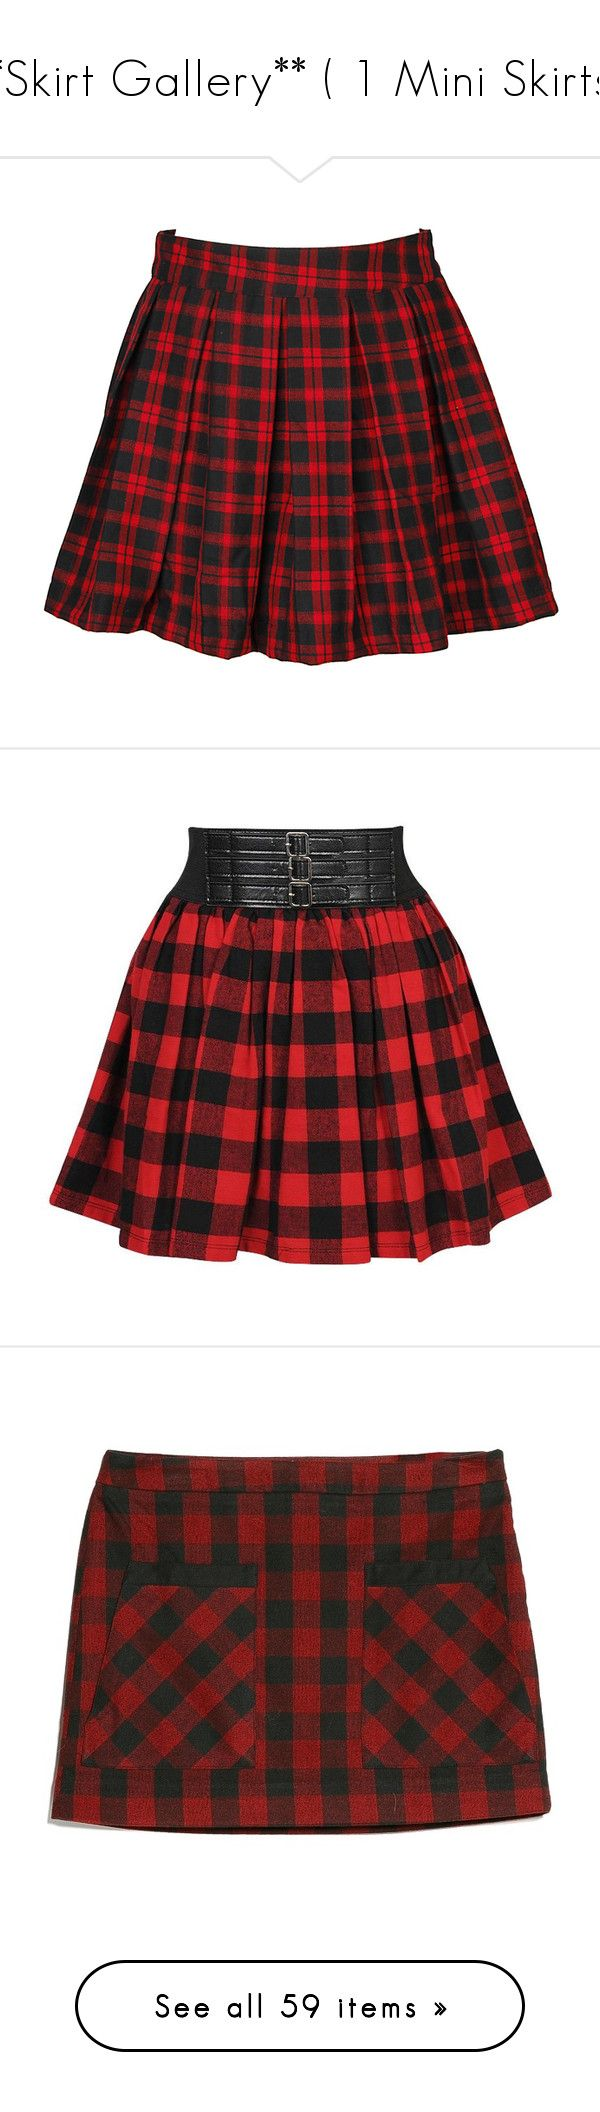 """**Skirt Gallery** ( 1 Mini Skirts.)"" by lillian-pandola ❤ liked on Polyvore featuring skirts, bottoms, saias, tartan skirt, plaid pleated skirt, red tartan plaid skirt, tartan plaid pleated skirt, red skirt, mini skirts and red"